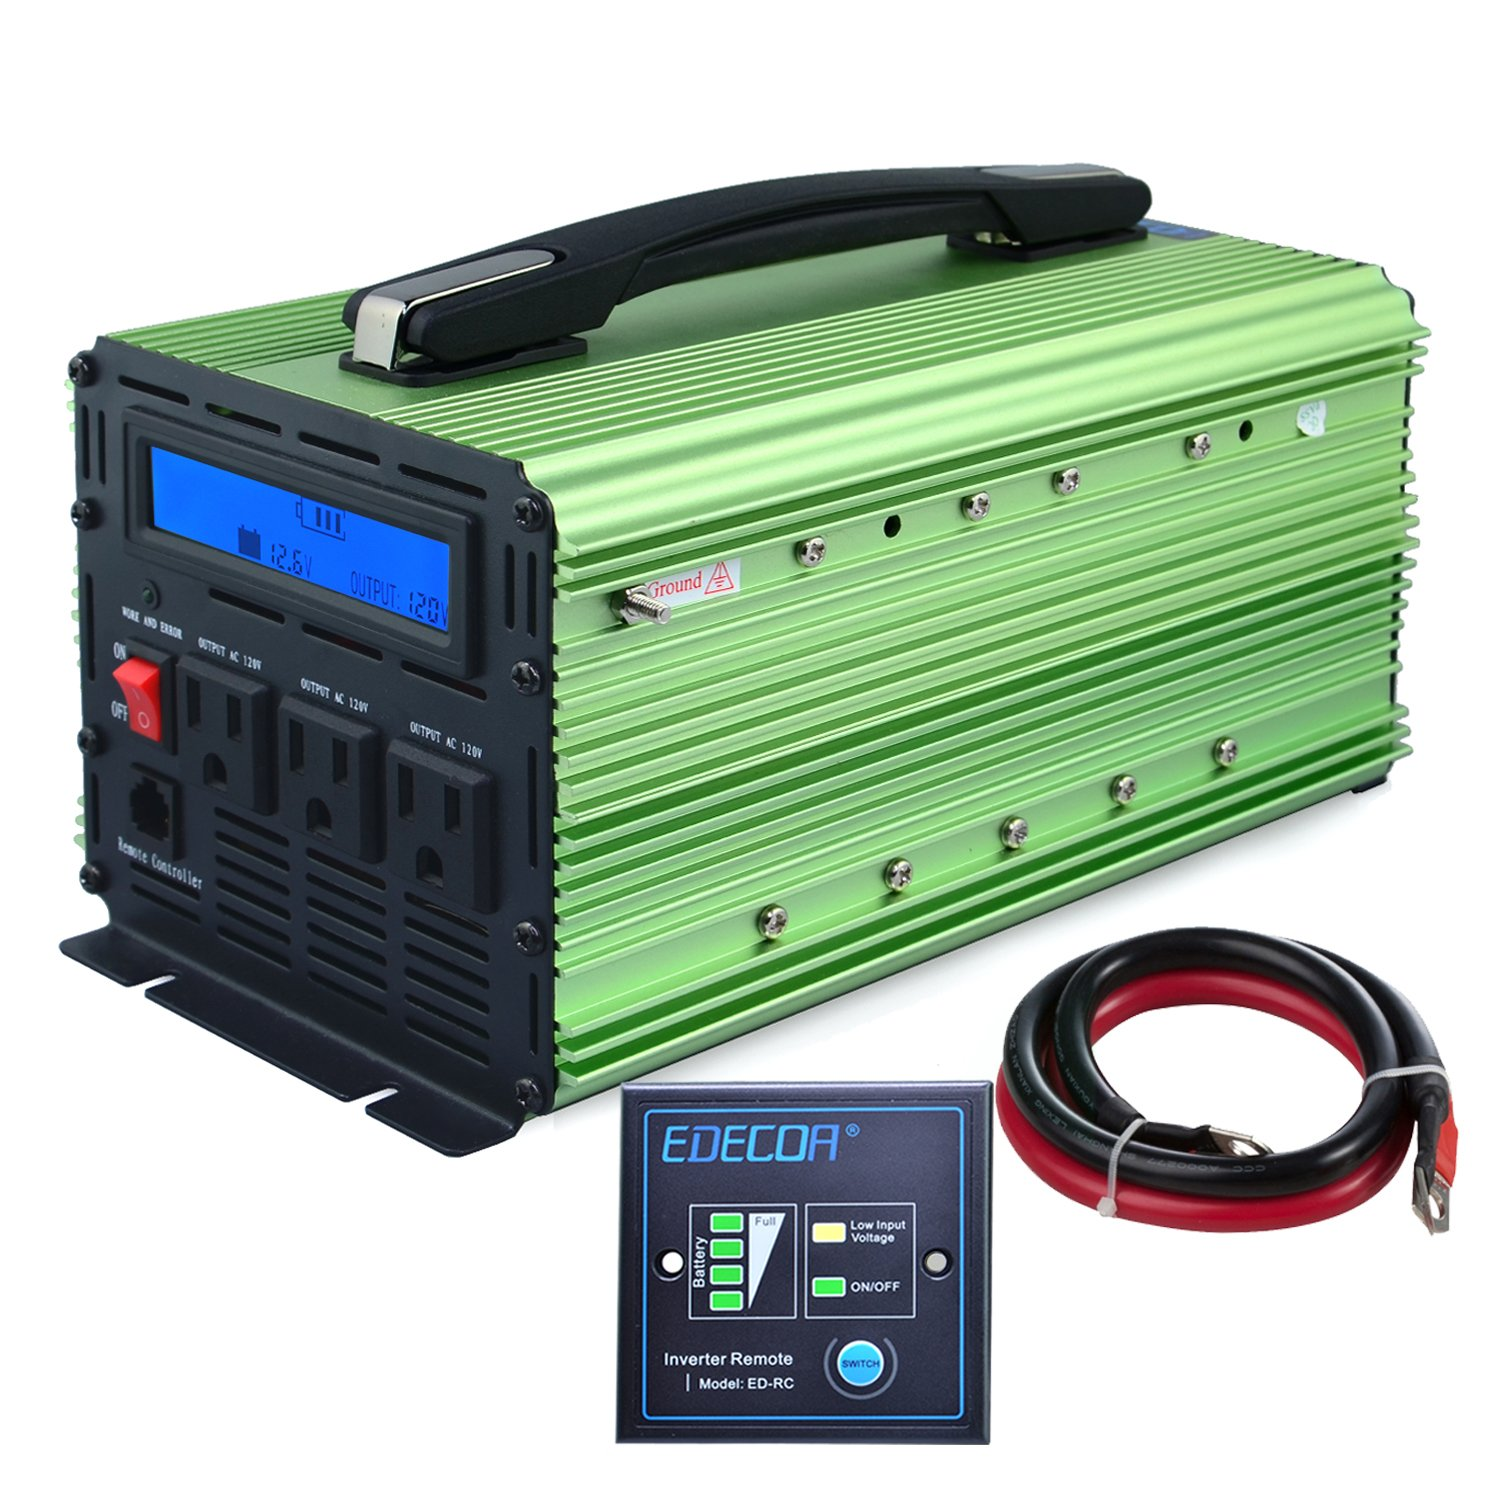 EDECOA 2000W Power Inverter Modified Sine Wave DC 12V to 110V AC with LCD Display and Remote by EDECOA